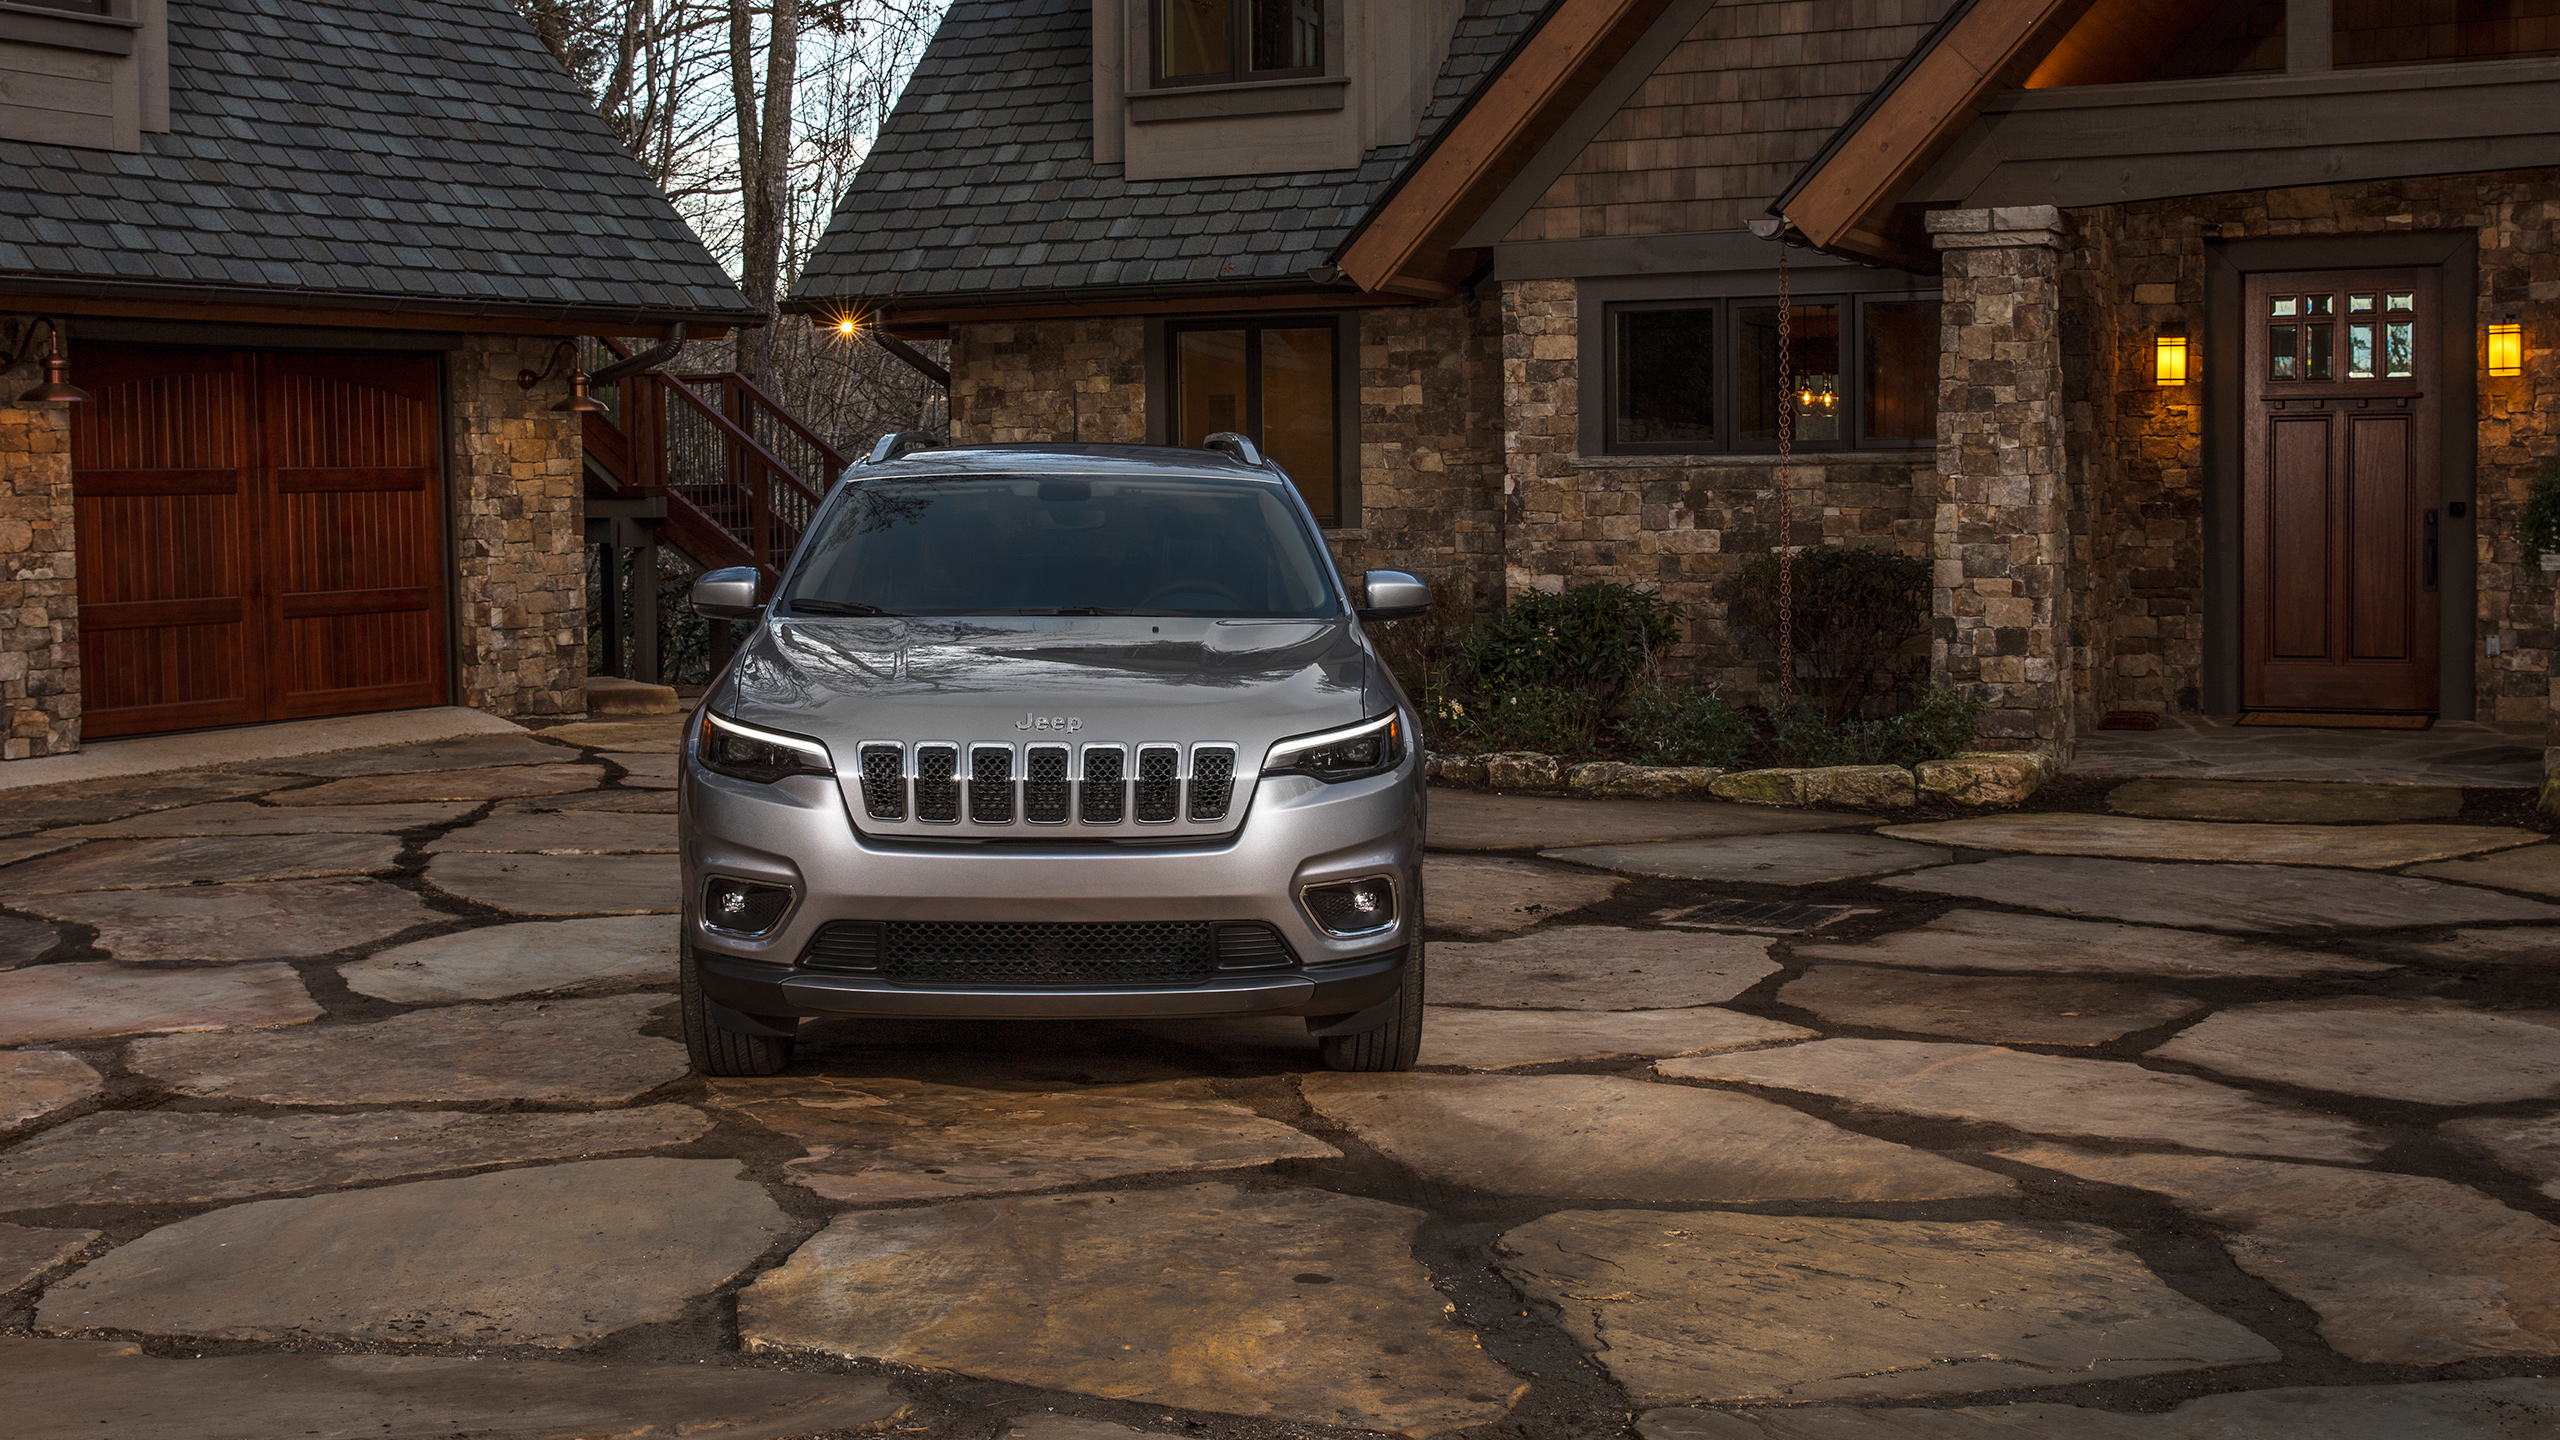 2019 Jeep Cherokee Limited 3 Wallpaper HD Car Wallpapers ID 9413 2560x1440